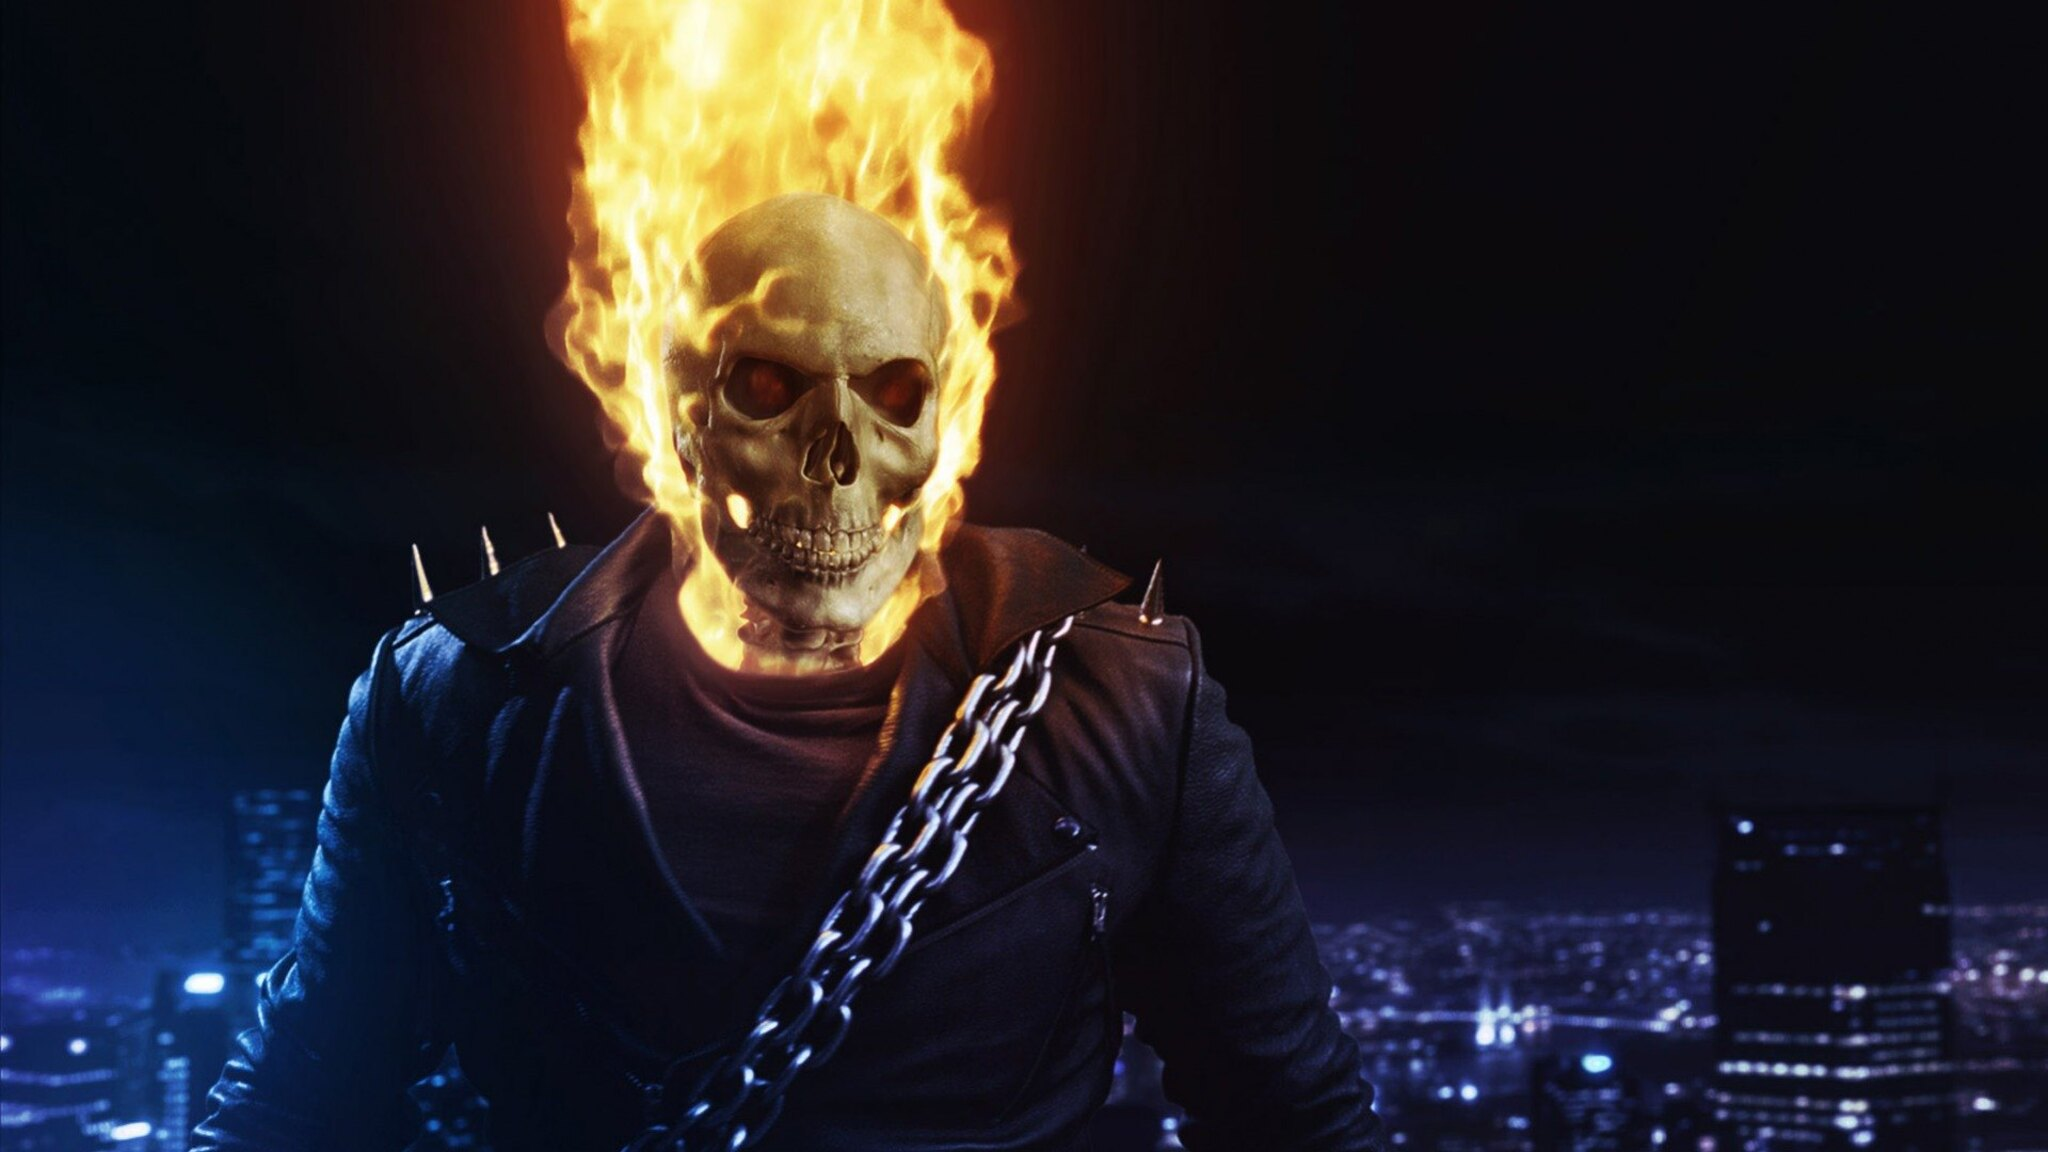 2048x1152 ghost rider movie 2048x1152 resolution hd 4k wallpapers